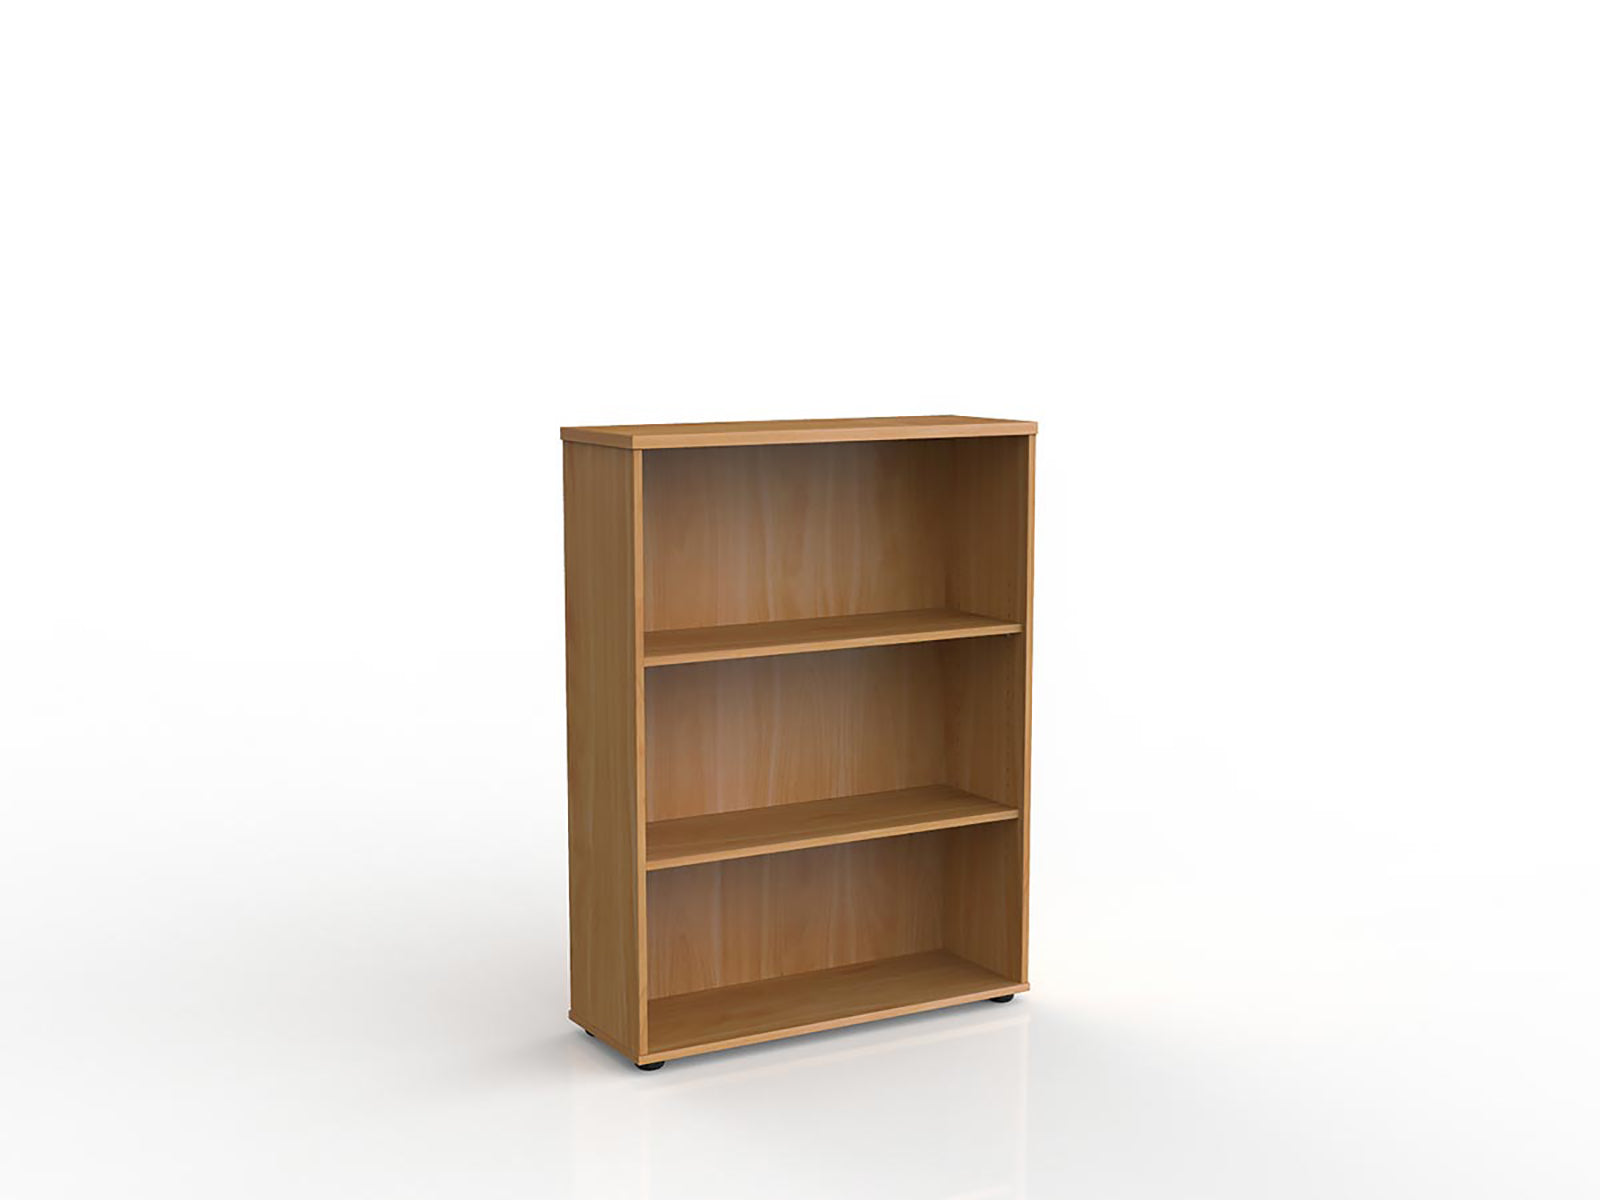 Ergoplan 1.2m Bookcase - Workspace Furniture Home and Office Cupboards and Shelves